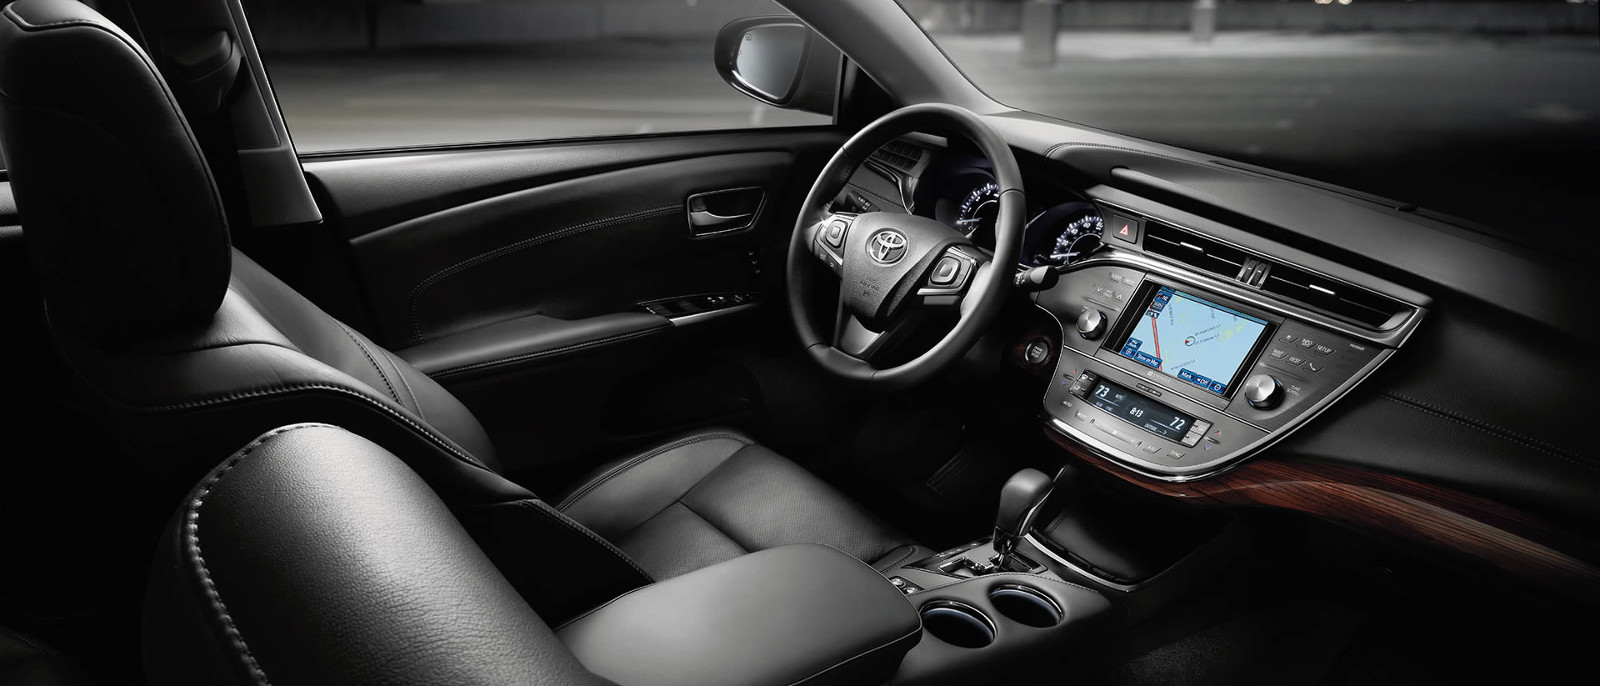 2015 Toyota Avalon Interior Cabin